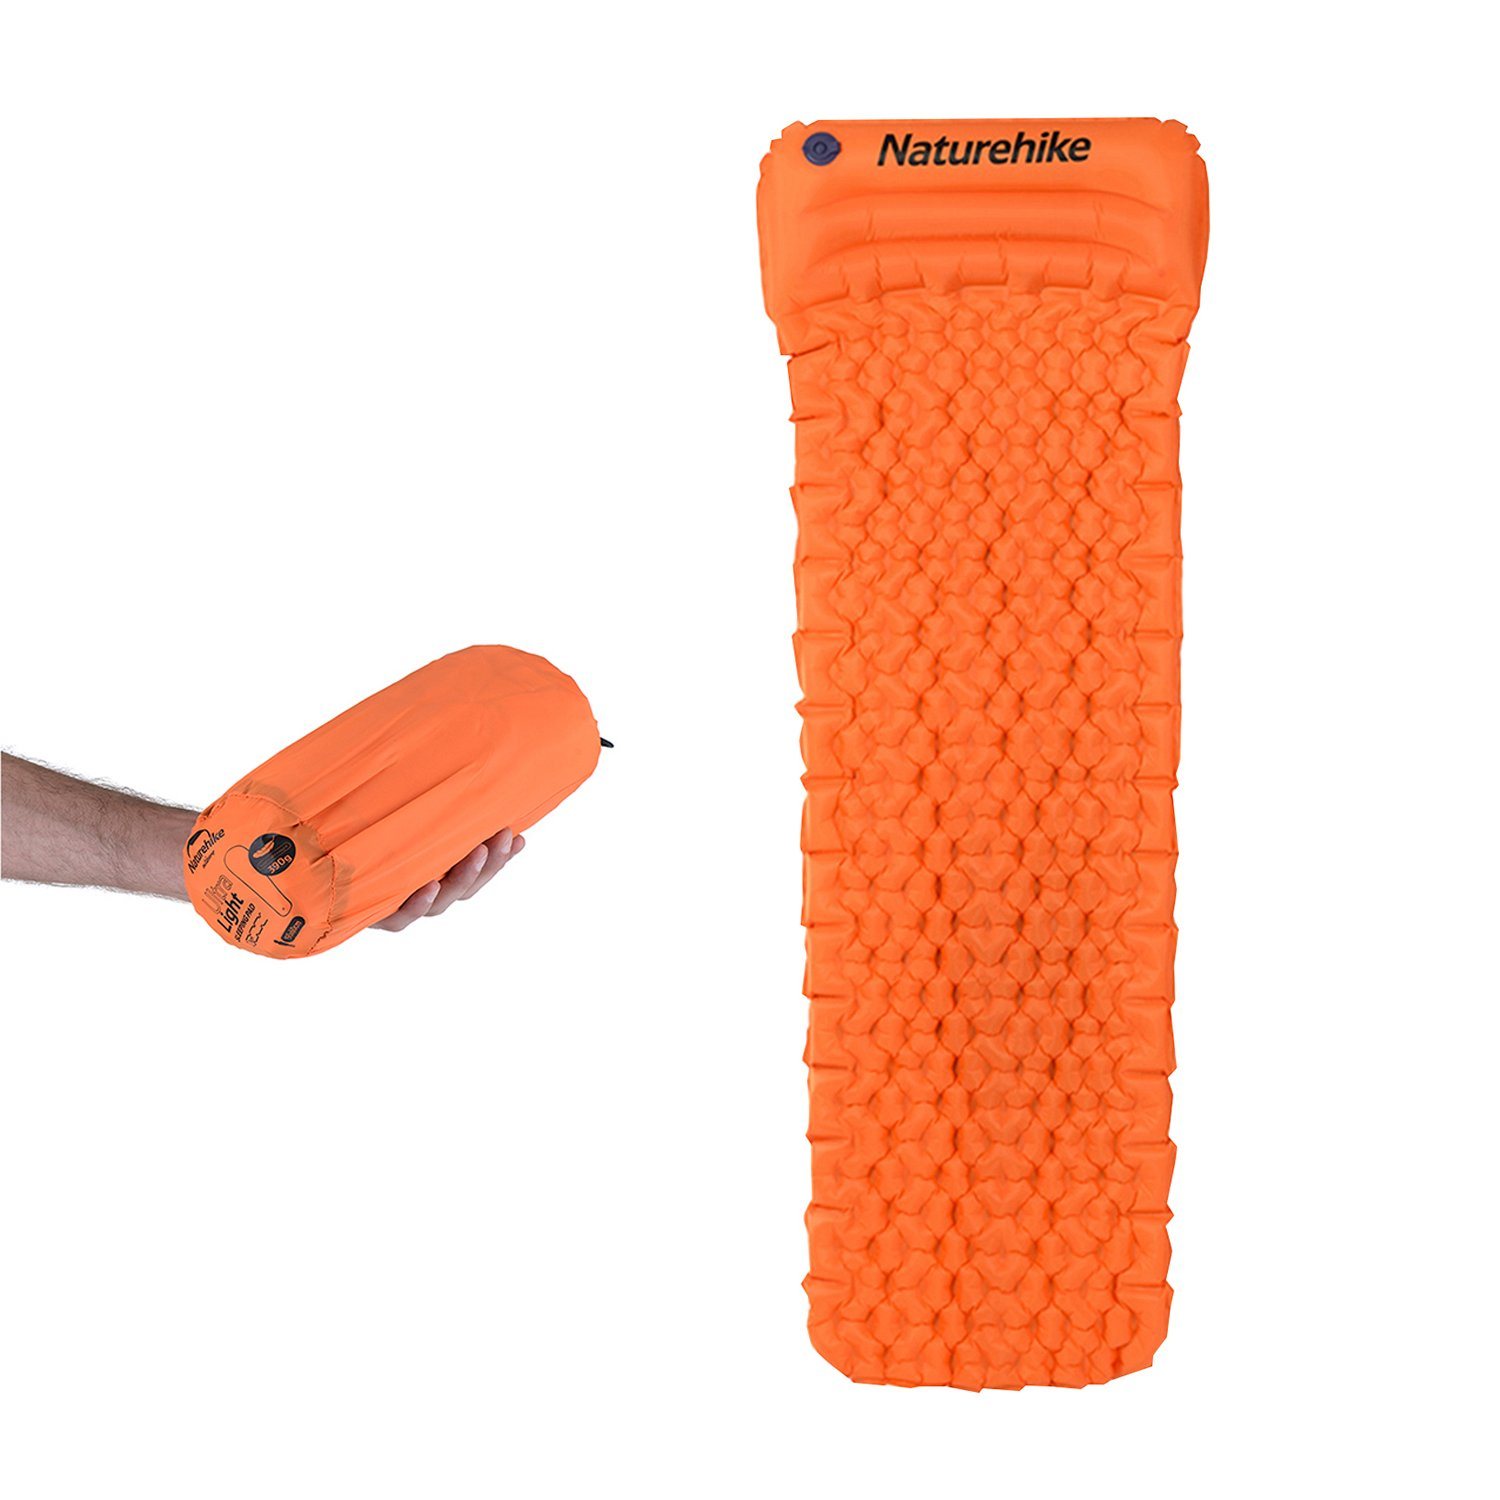 Naturehike Ultralight Sleeping-Matte mit integriertem Kissen - Orange